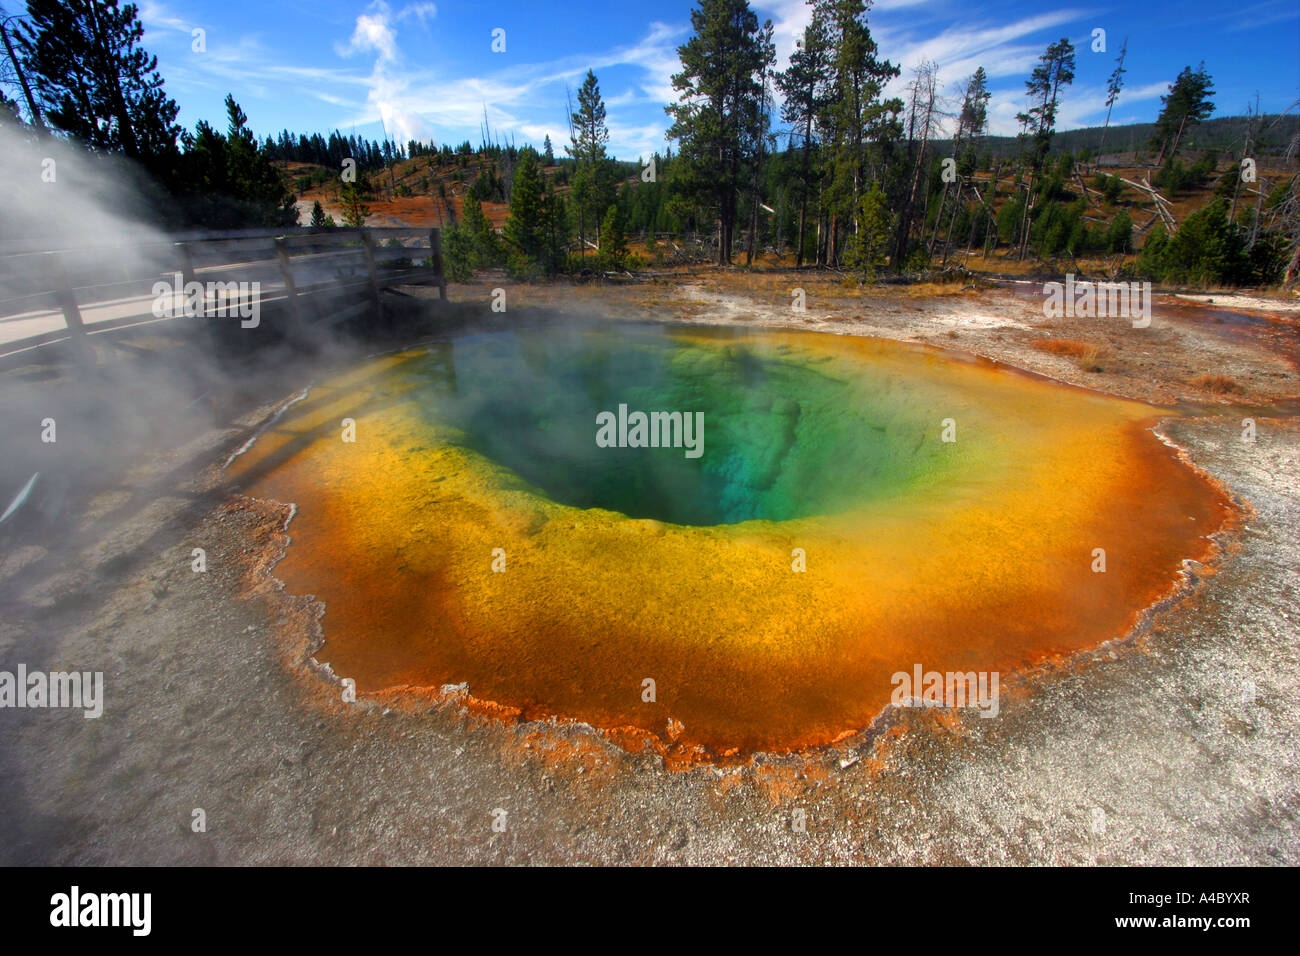 Morning Glory pool, le parc national de Yellowstone Banque D'Images